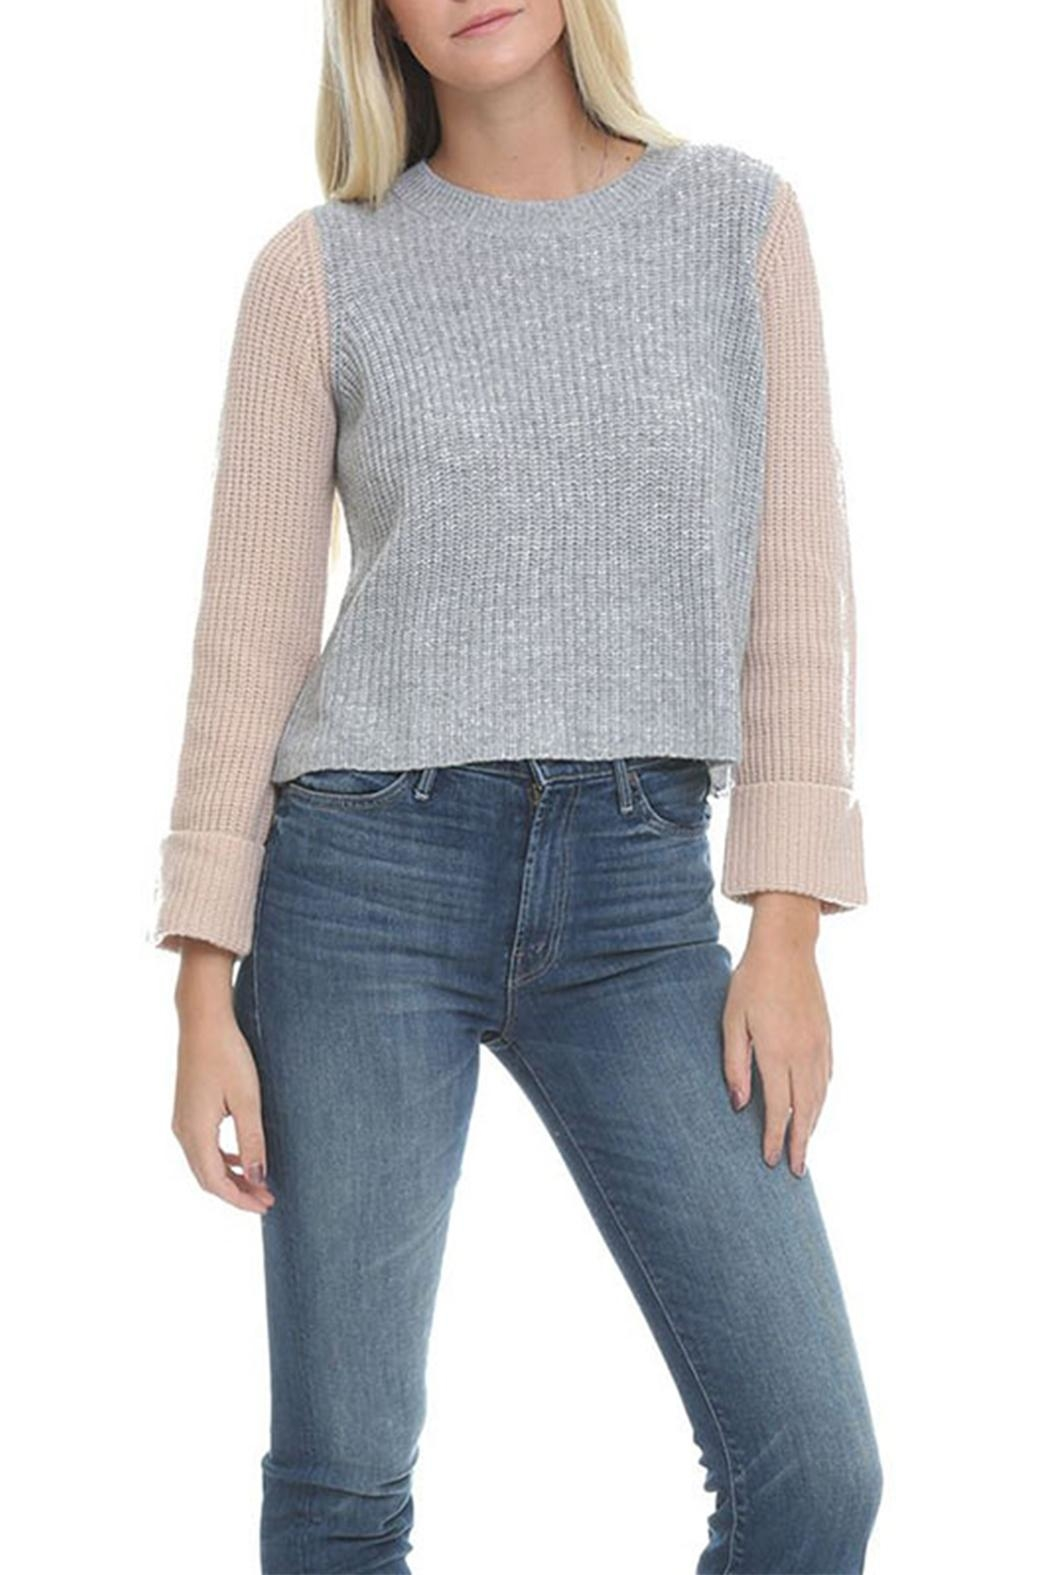 2e6dc011ca Autumn Cashmere Colorblock Cashmere Sweater from New York by Leelee ...